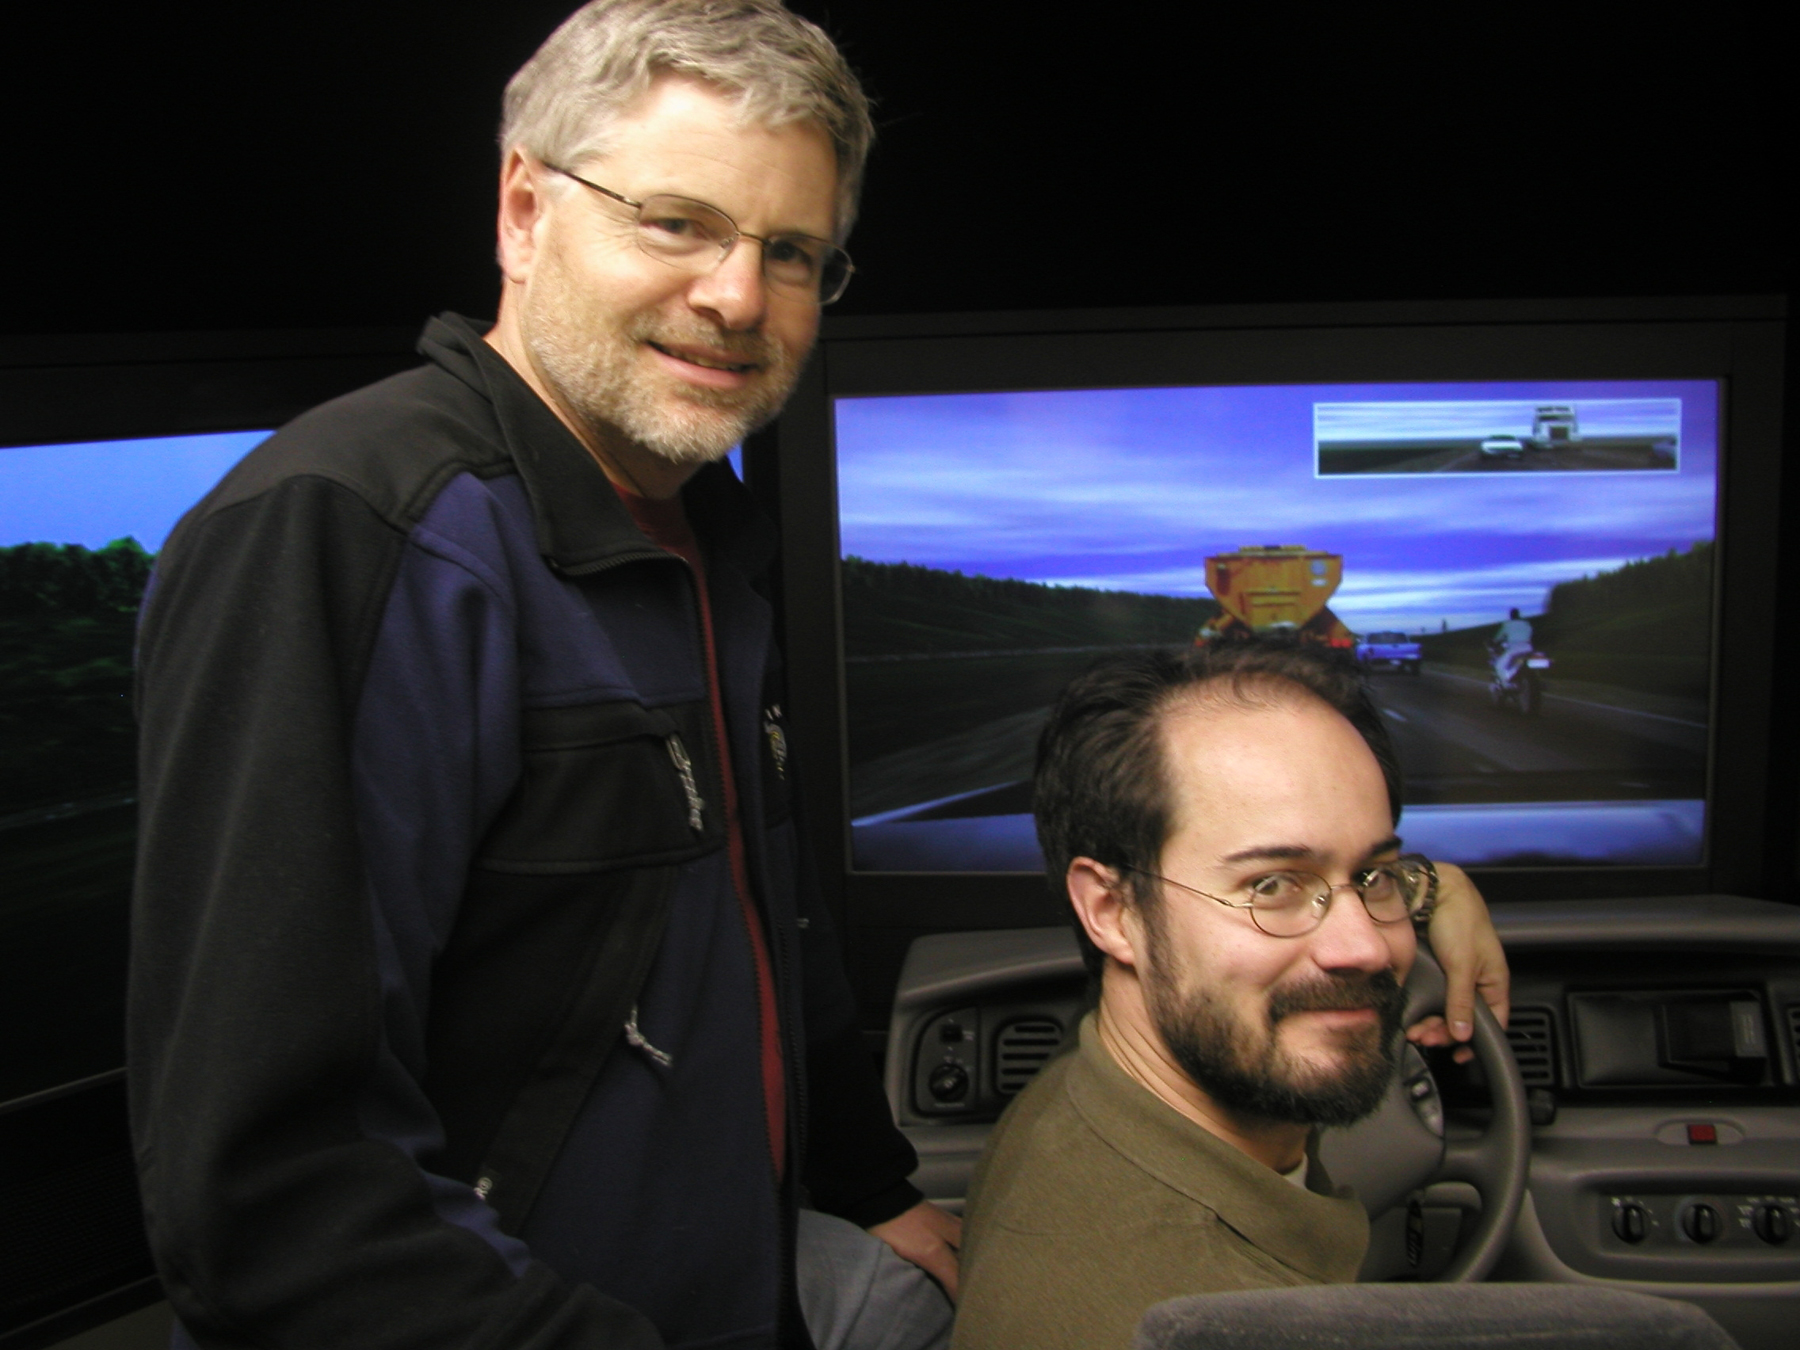 University of Utah psychologists David Strayer and Jason Watson in a driving simulator they use to study how cellular phones and texting distract drivers. Their latest study found that 39 out of 40 people cannot drive safely while talking on a cell phone.